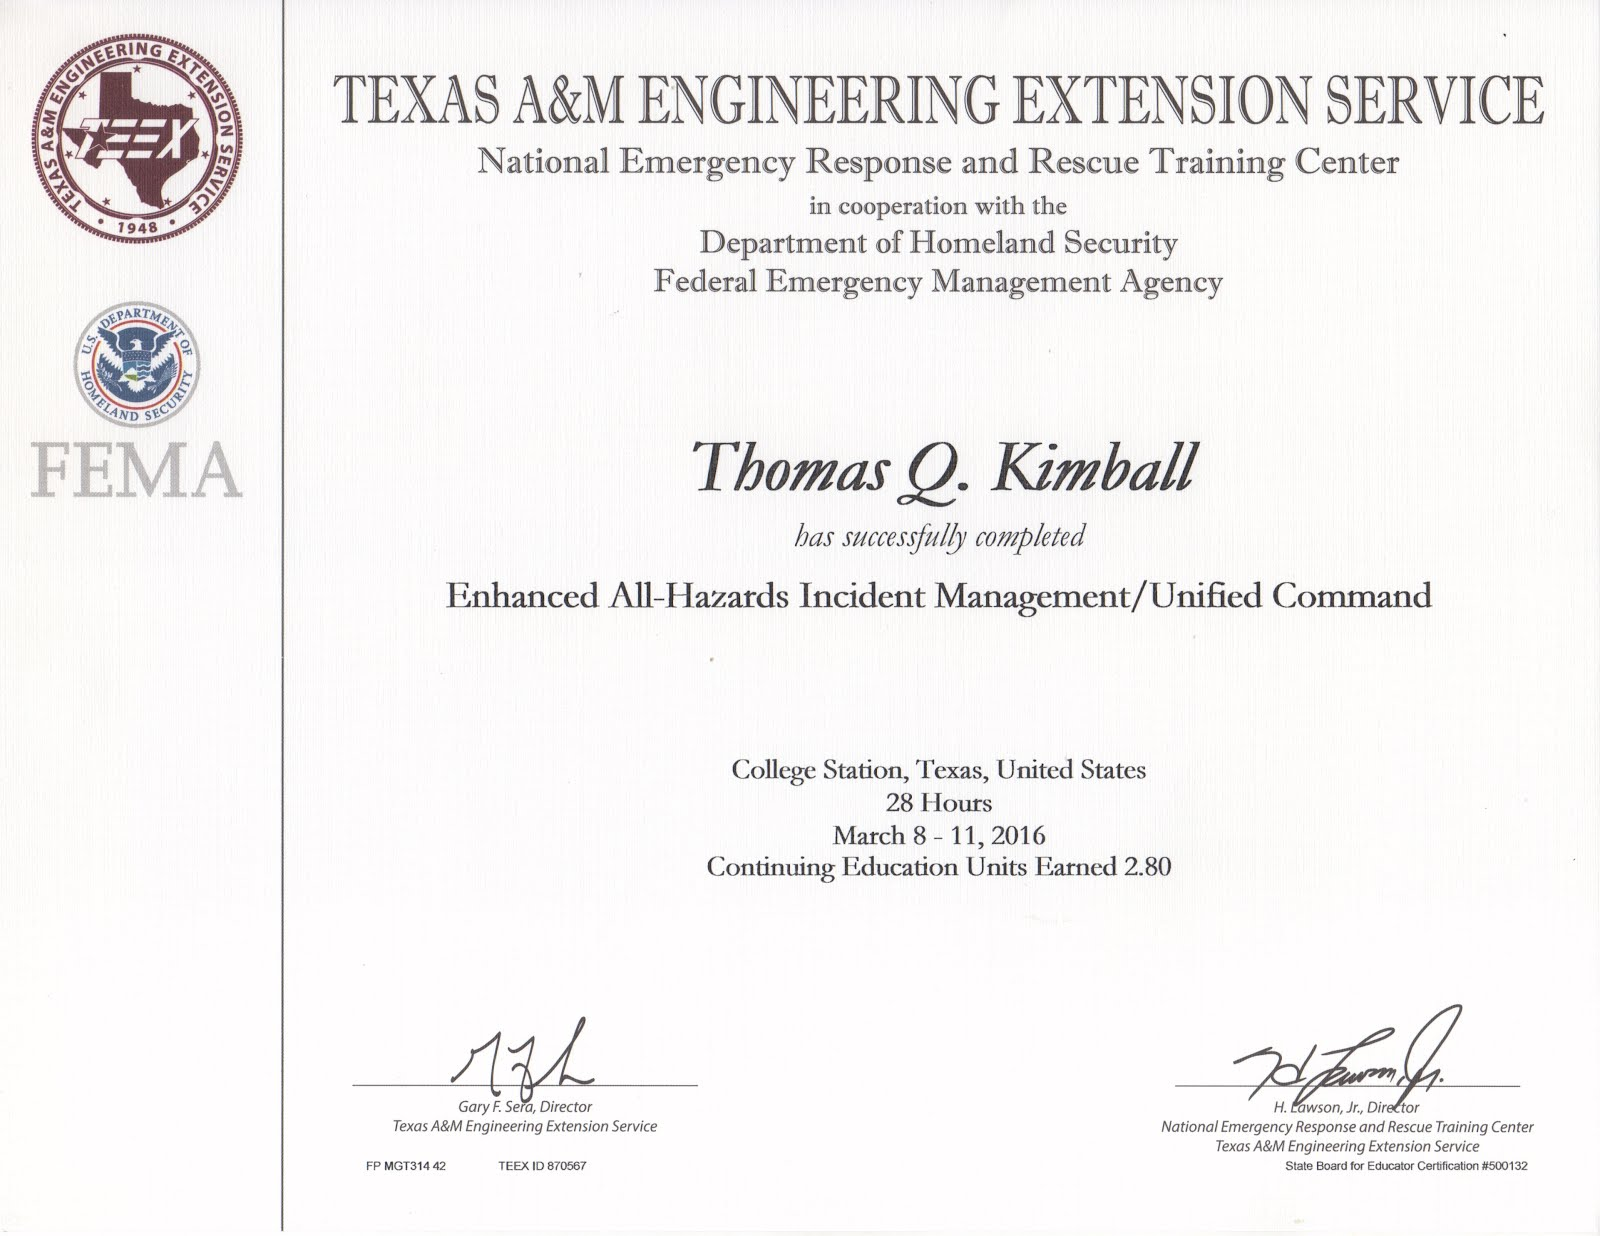 TEEX MGT-314 Enhanced All-Hazards Incident Management/Unified Command course